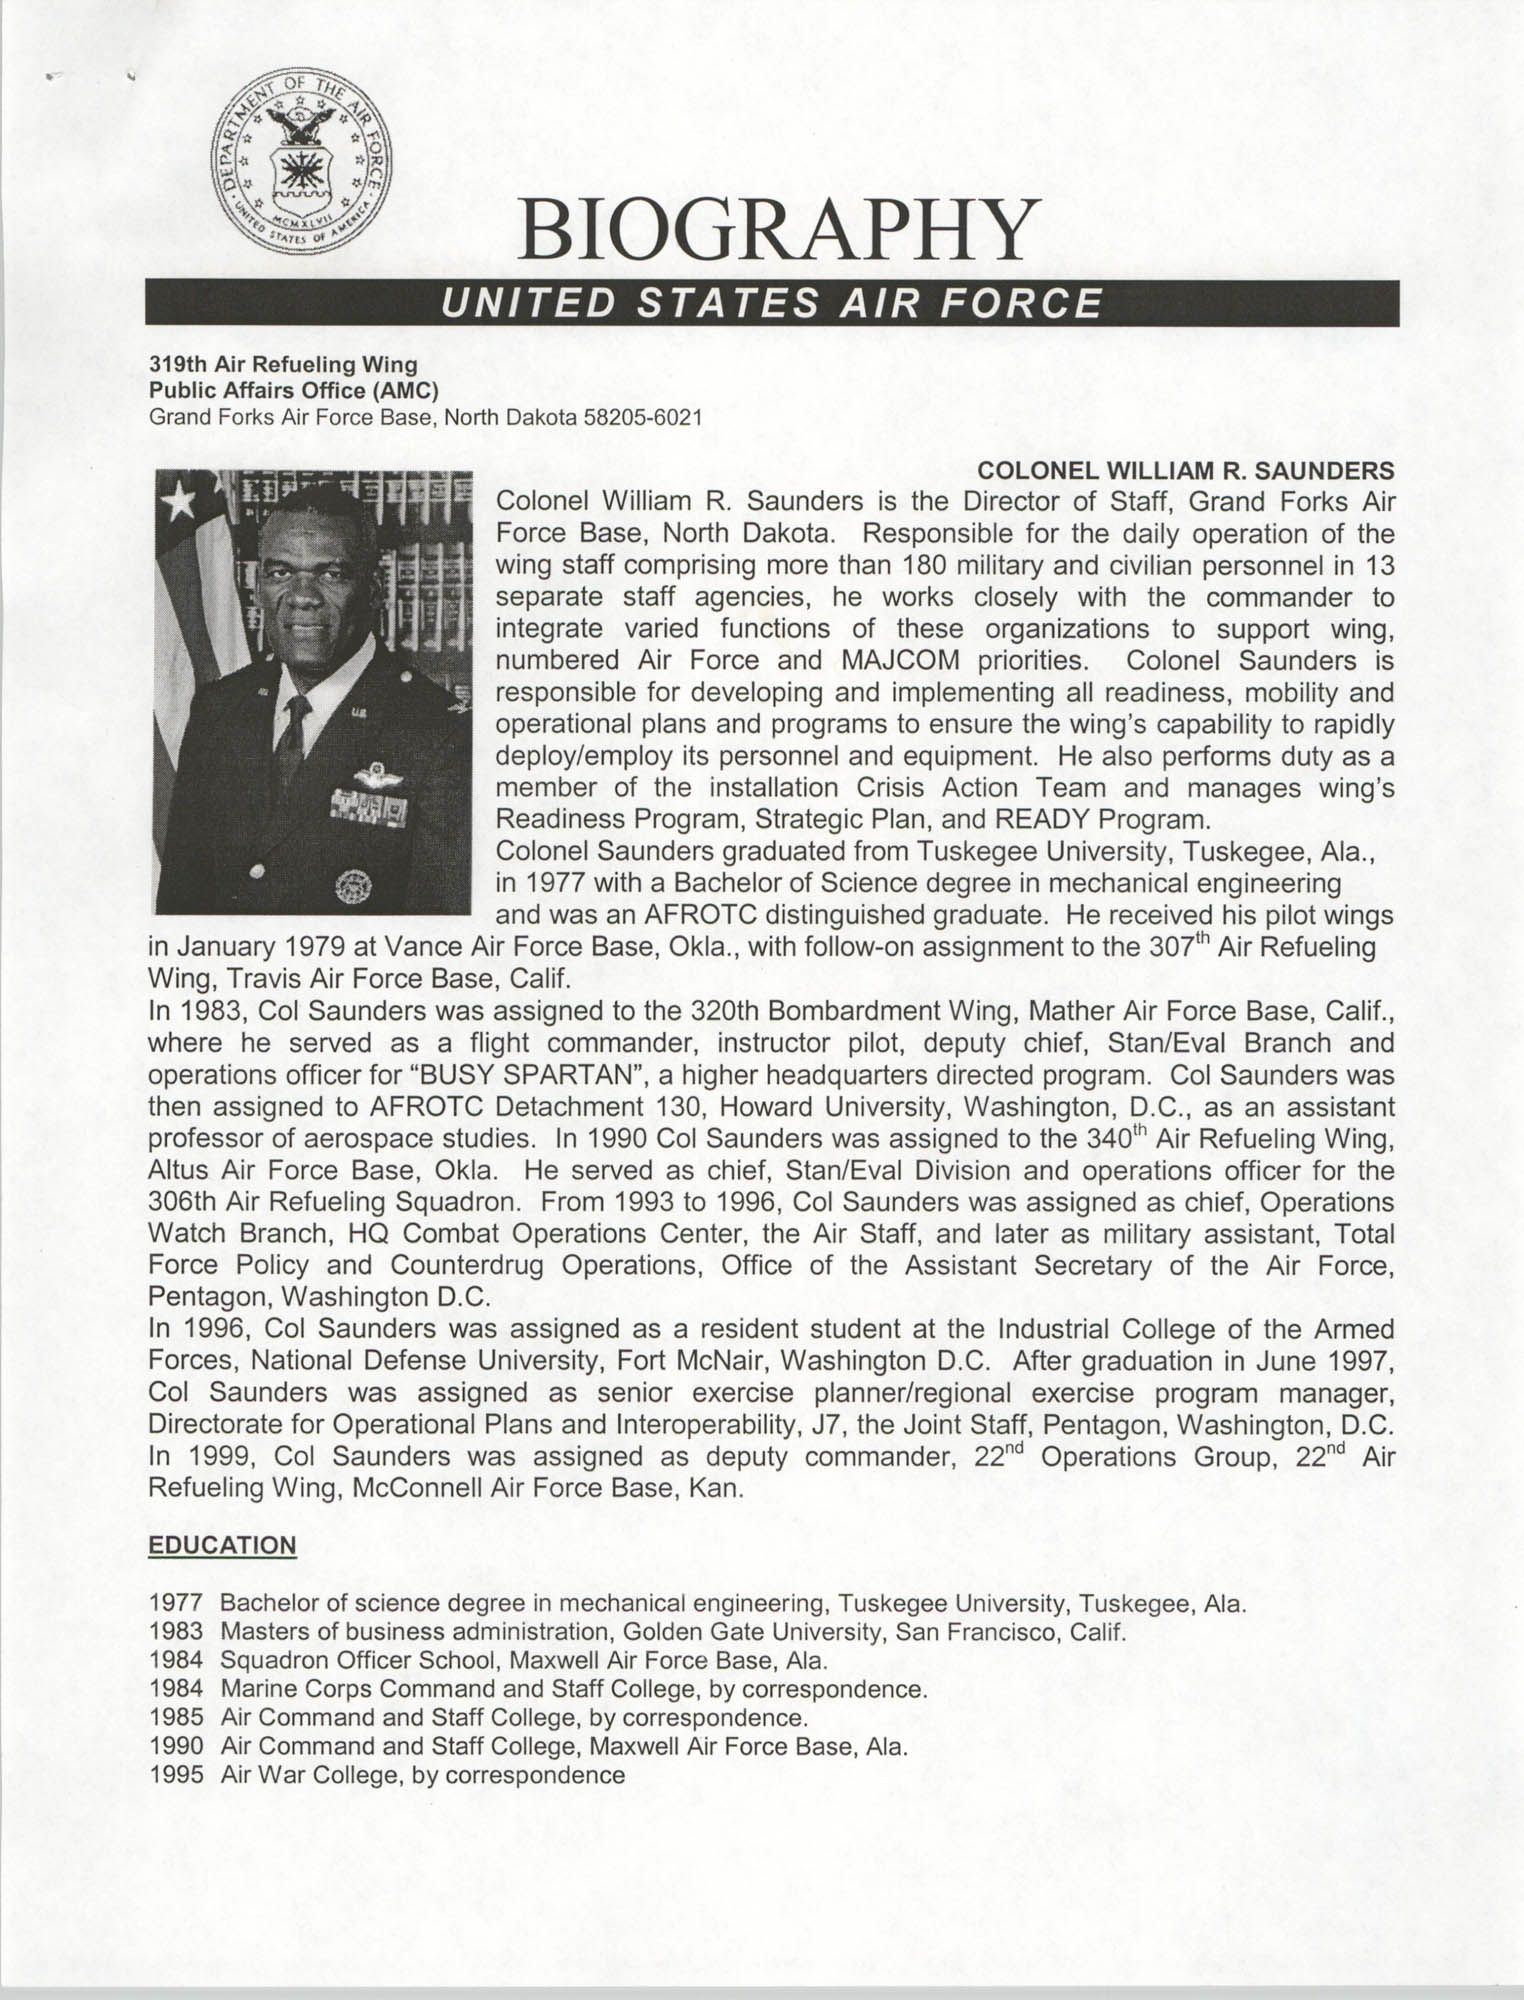 Biography, United States Air Force, Colonel William R. Saunders